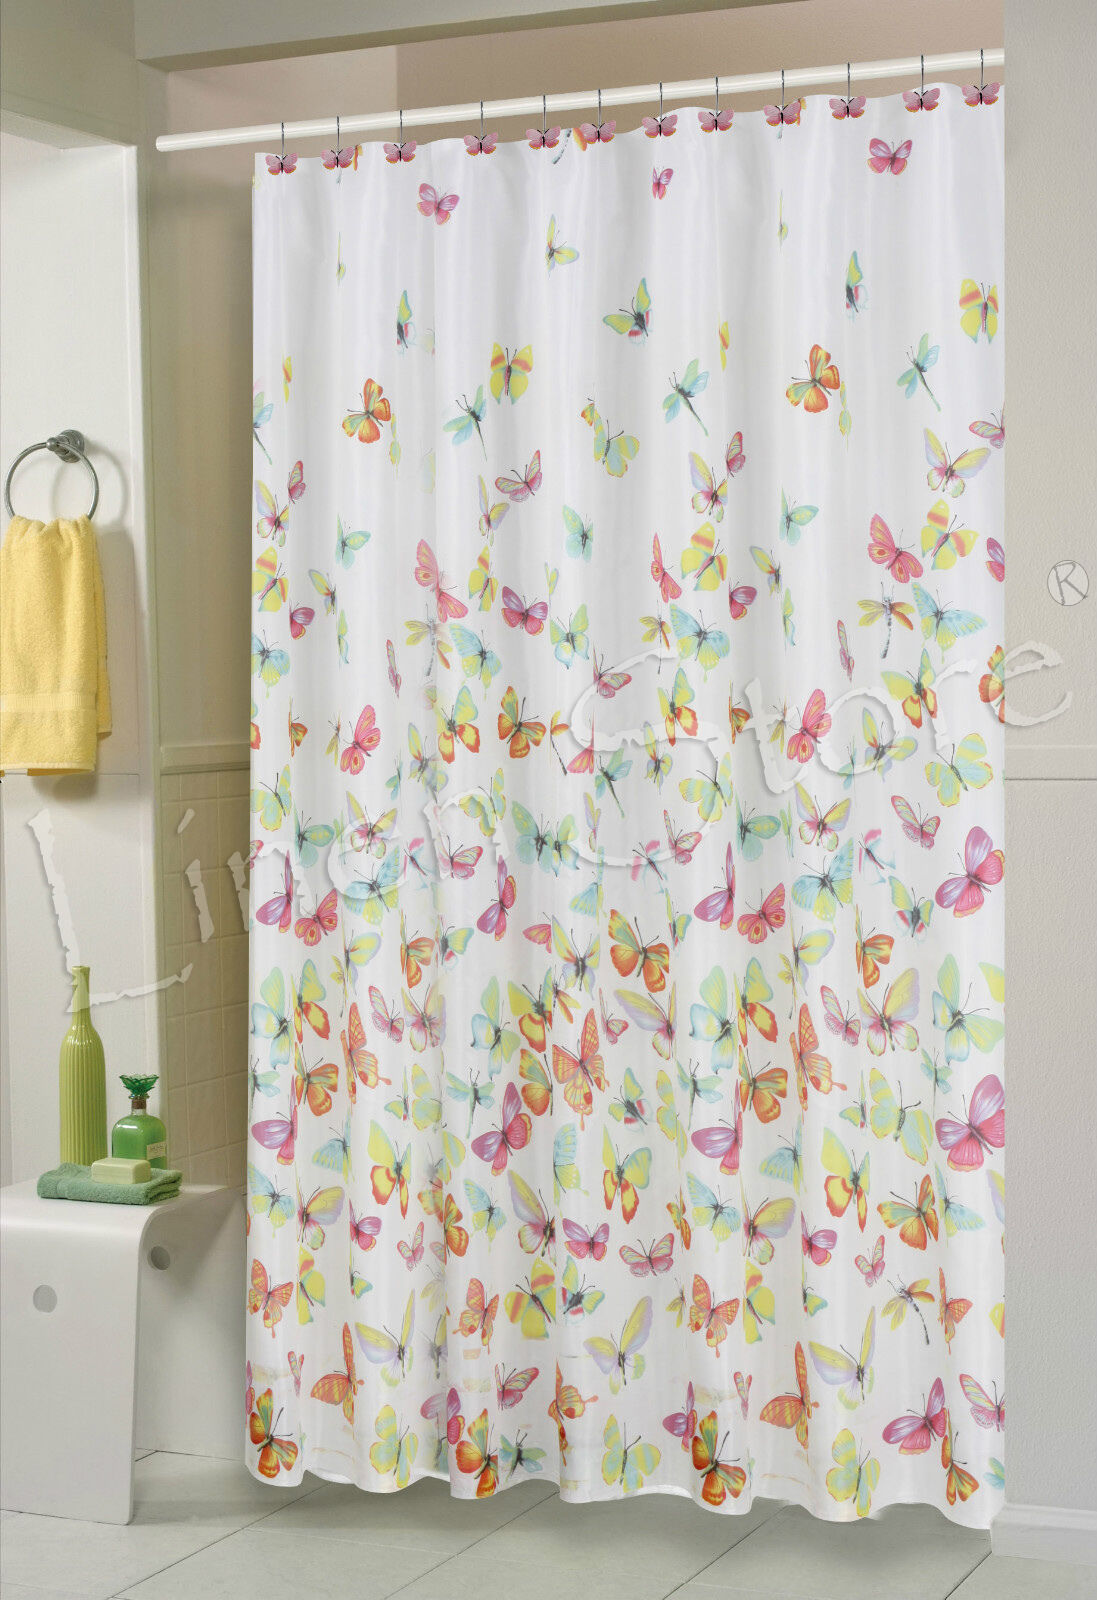 butterfly fabric shower curtain 70x70 colorful butterflies printed